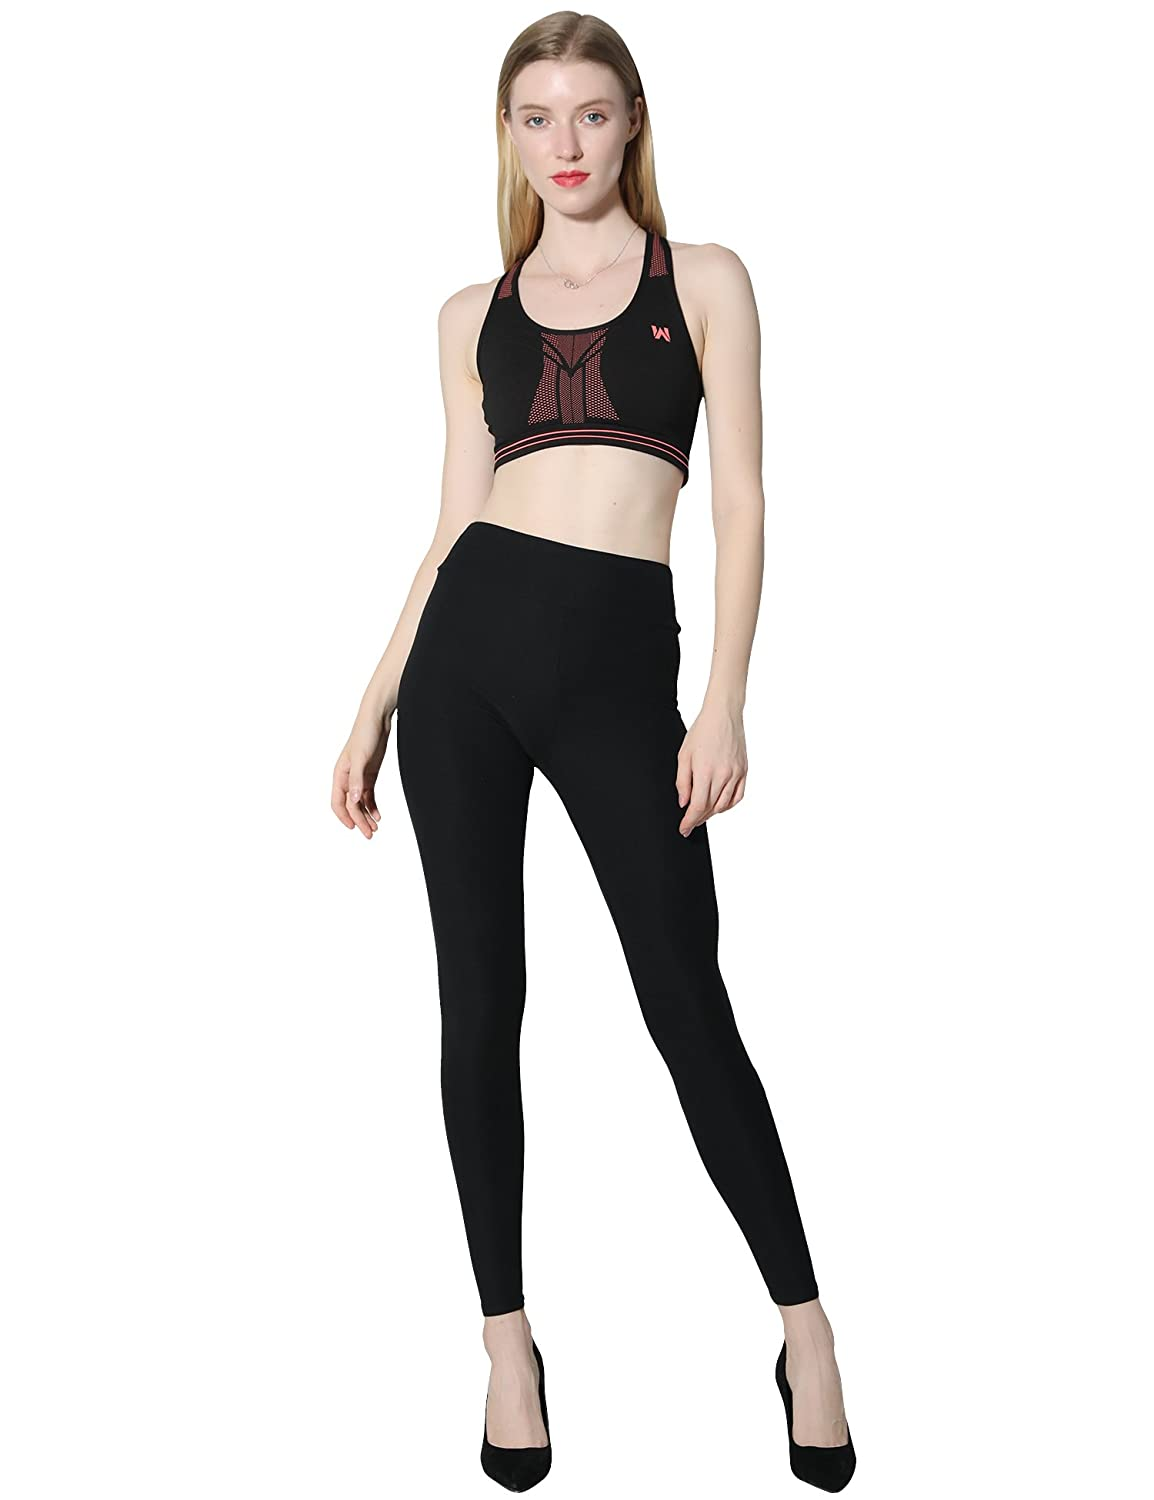 a0ec82b351b0f Diravo High Waist Leggings for Women, Soft Slim Pants, Stretch Basic  Leggingsfor Running Yoga Workout Fitness at Amazon Women's Clothing store: